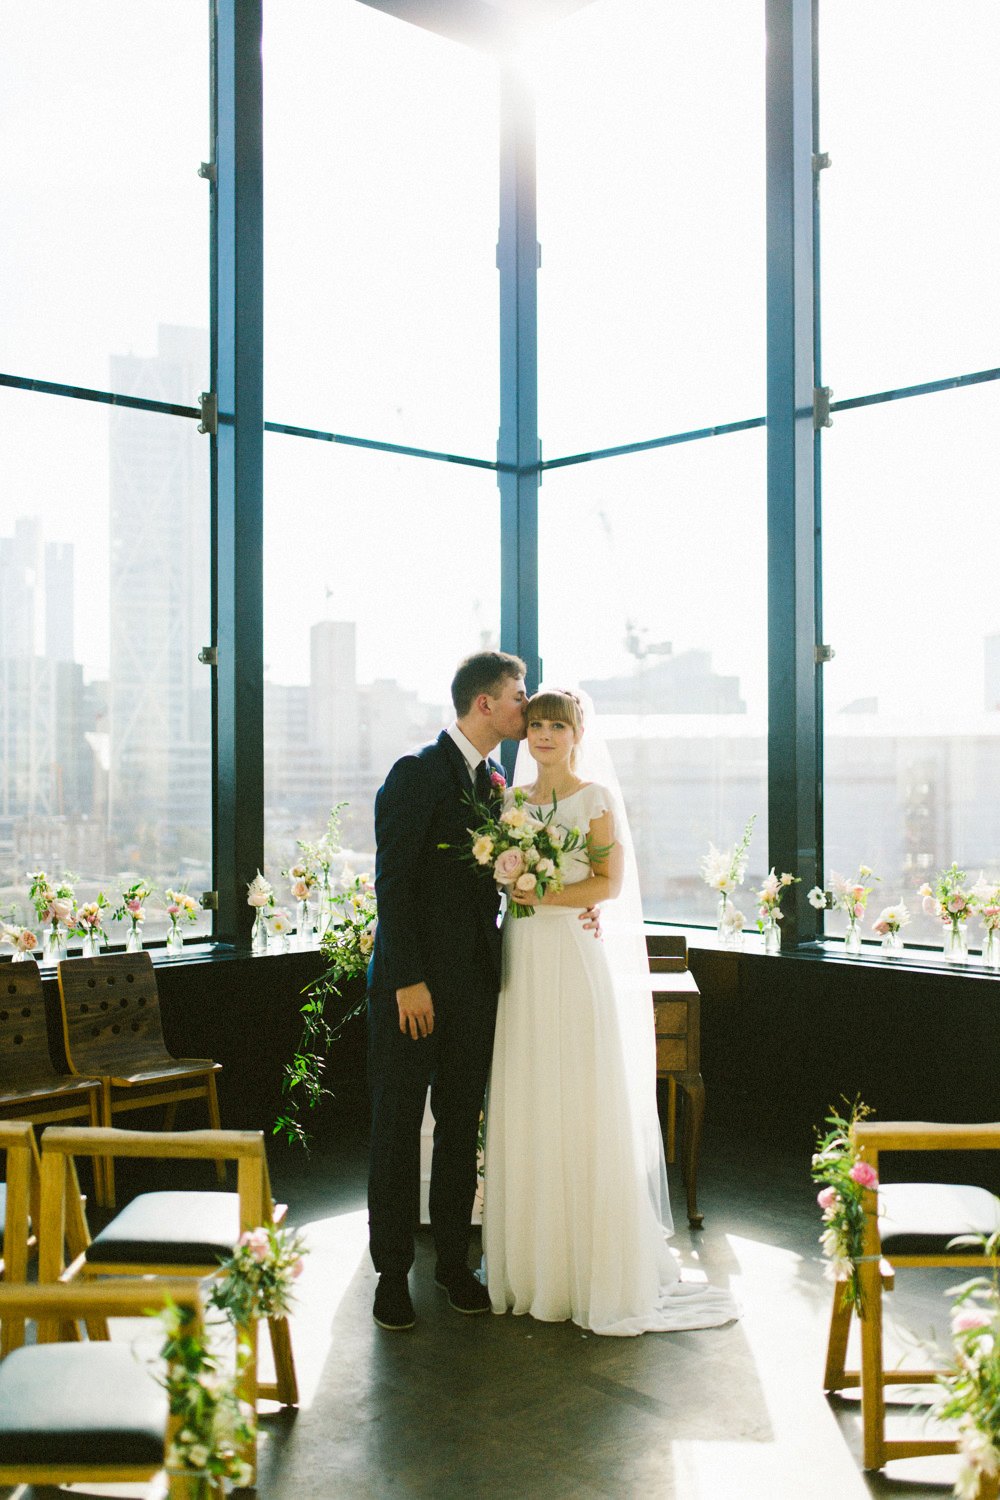 Ace hotel london wedding portraits